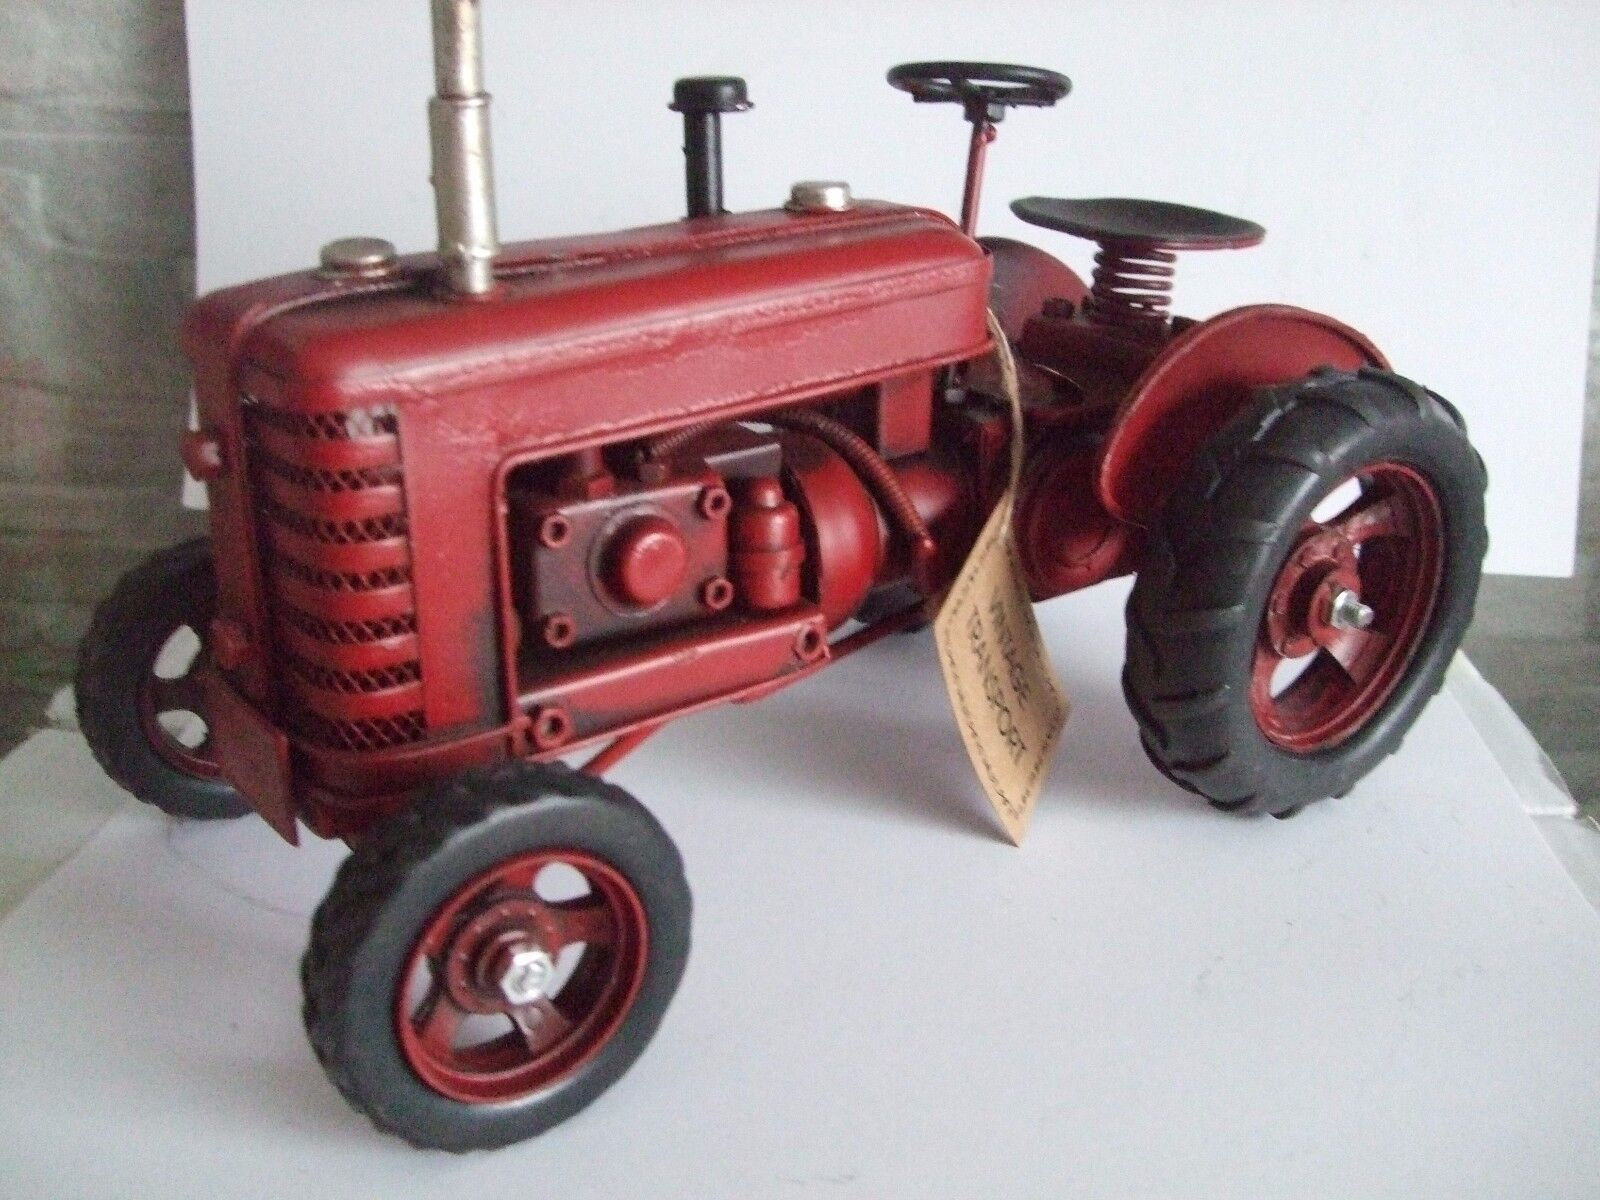 Tin Plate Model of a Classic Transport Red Tractor  Ornament  Gift  Red  Wheels